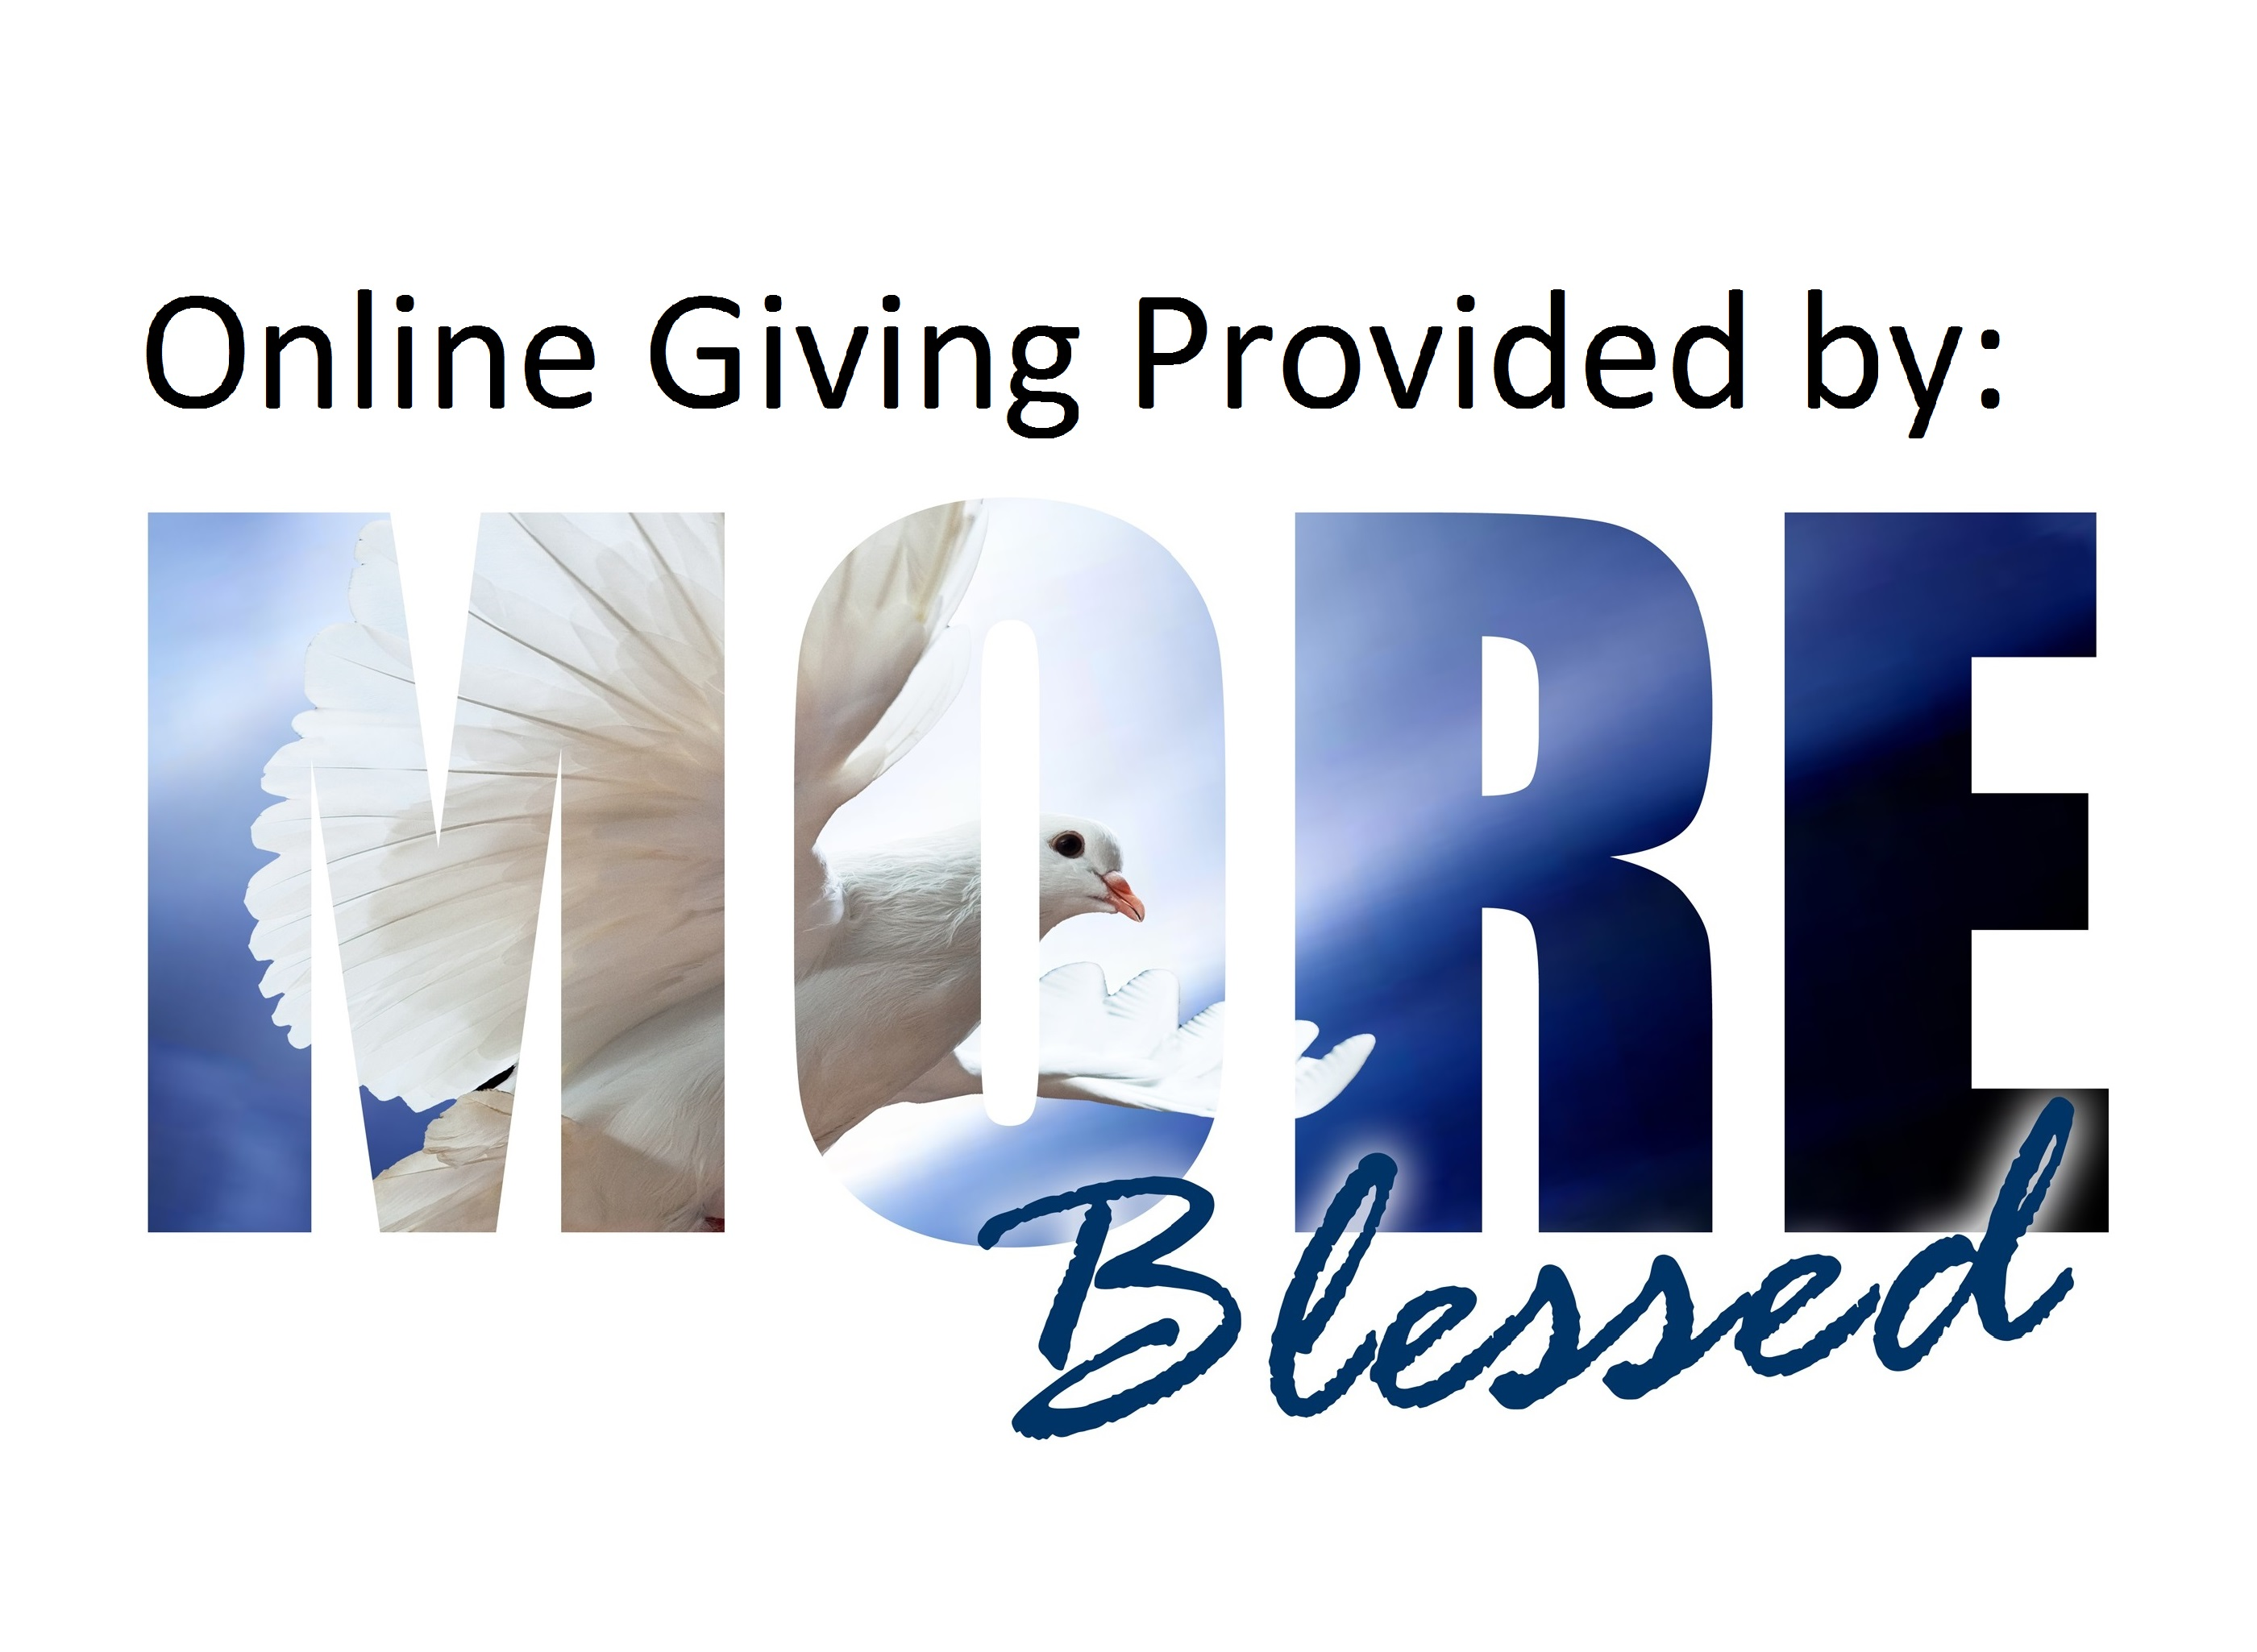 Online Giving Provided by: MORE Blessed